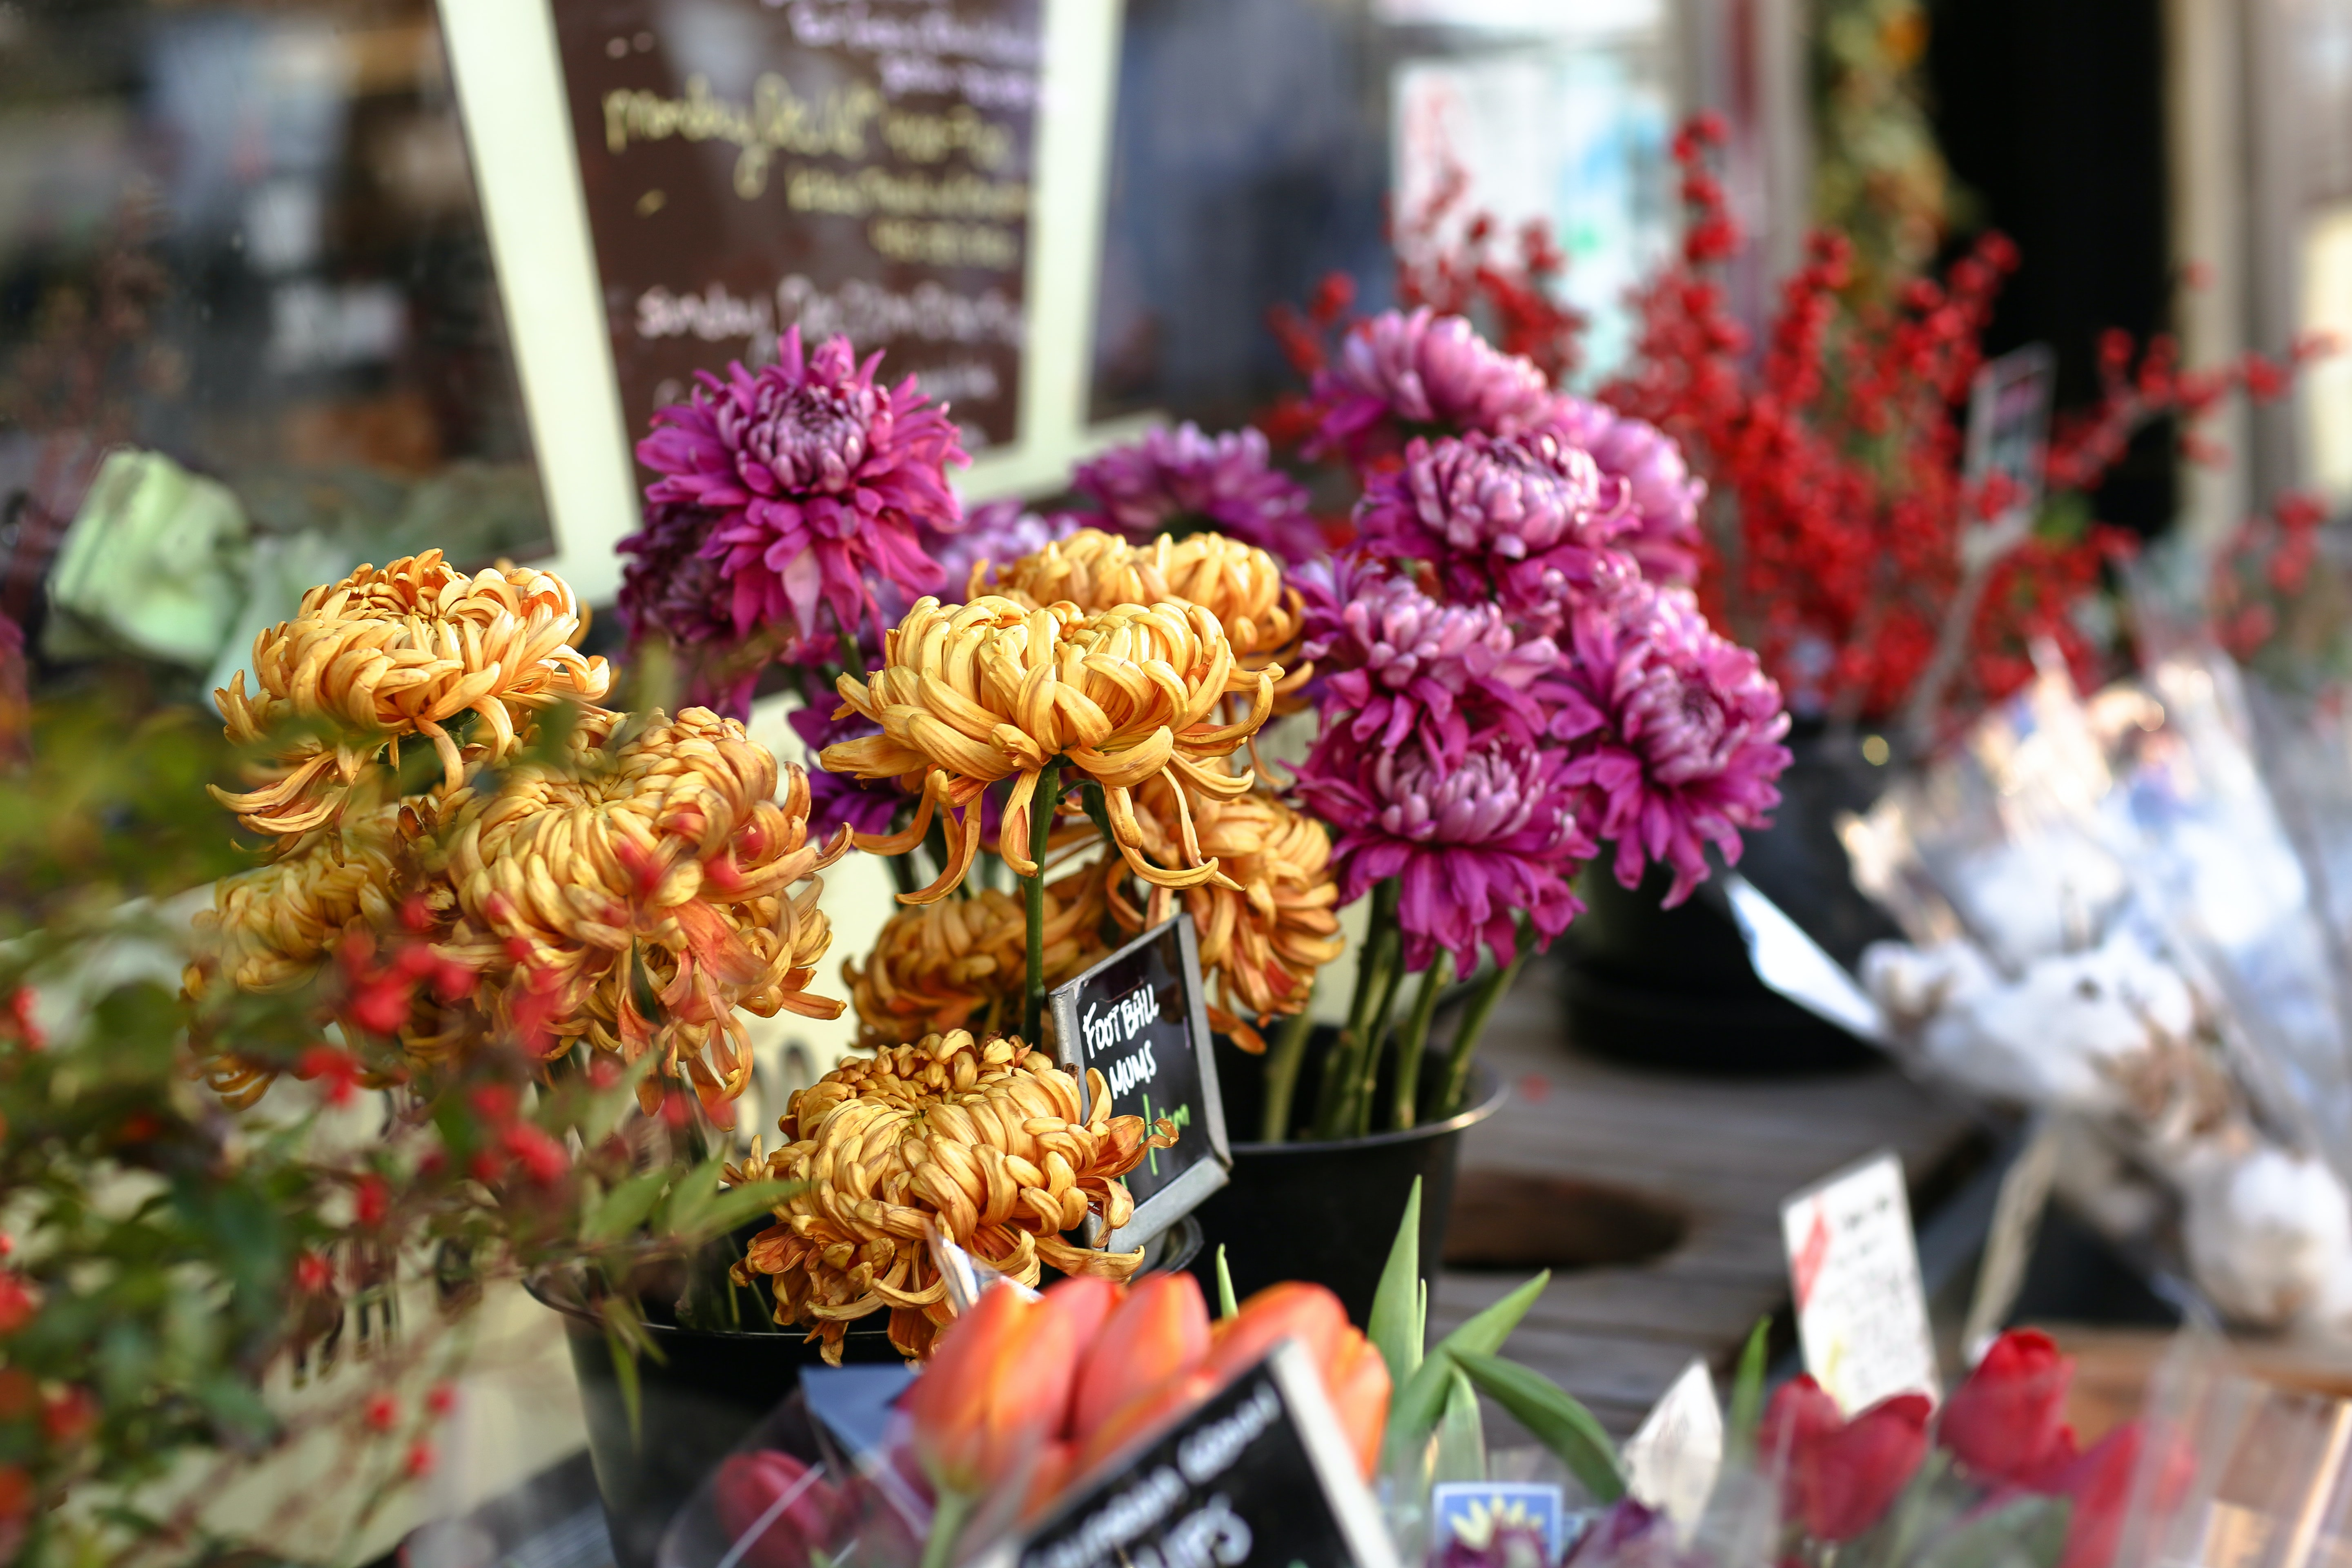 Bouquets of various flowers at a florist's storefront